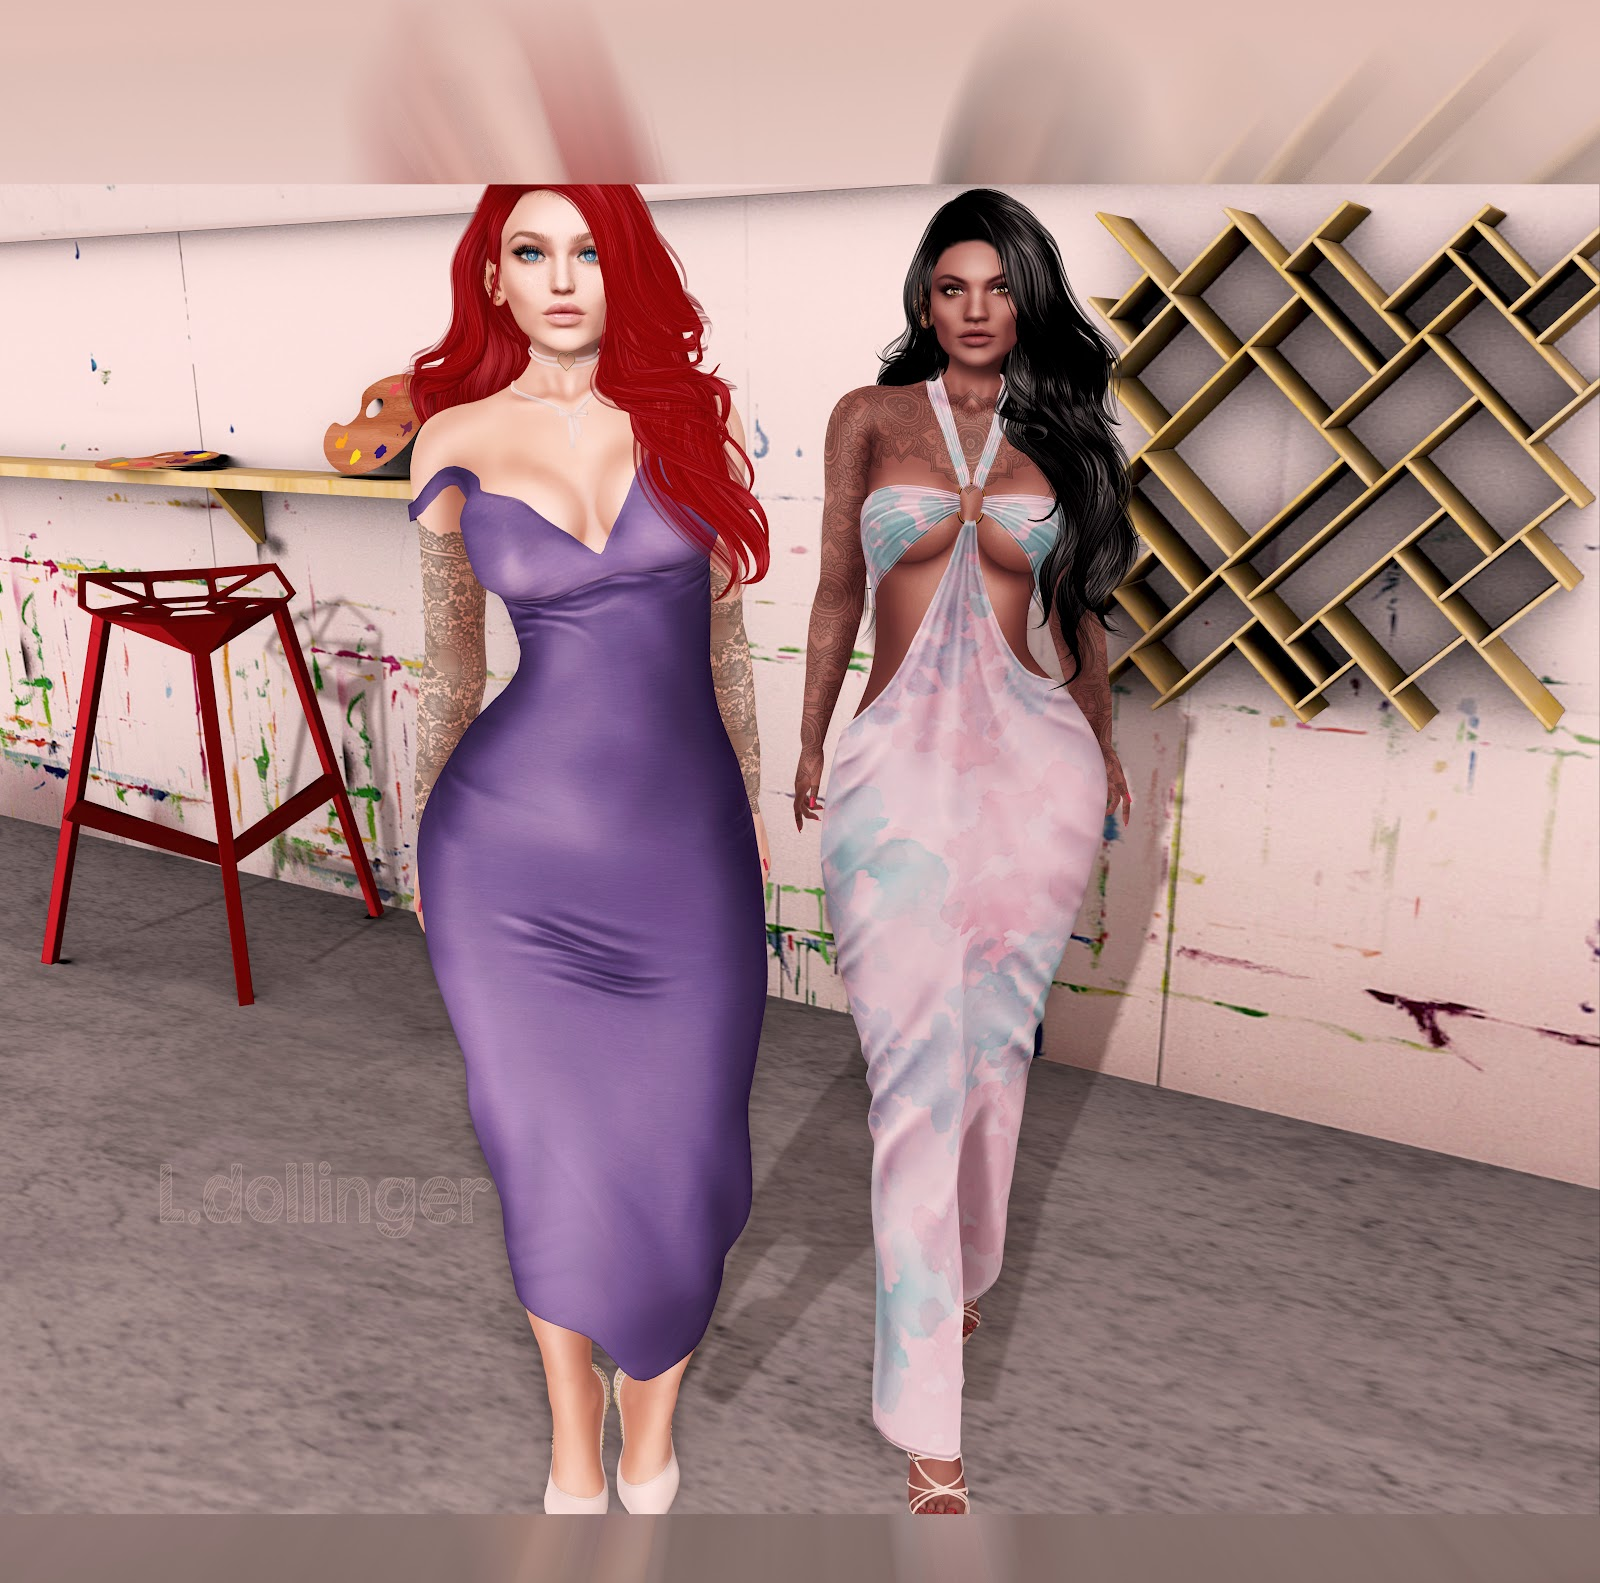 https://www.flickr.com/photos/itdollz/32253507810/in/photostream/lightbox/